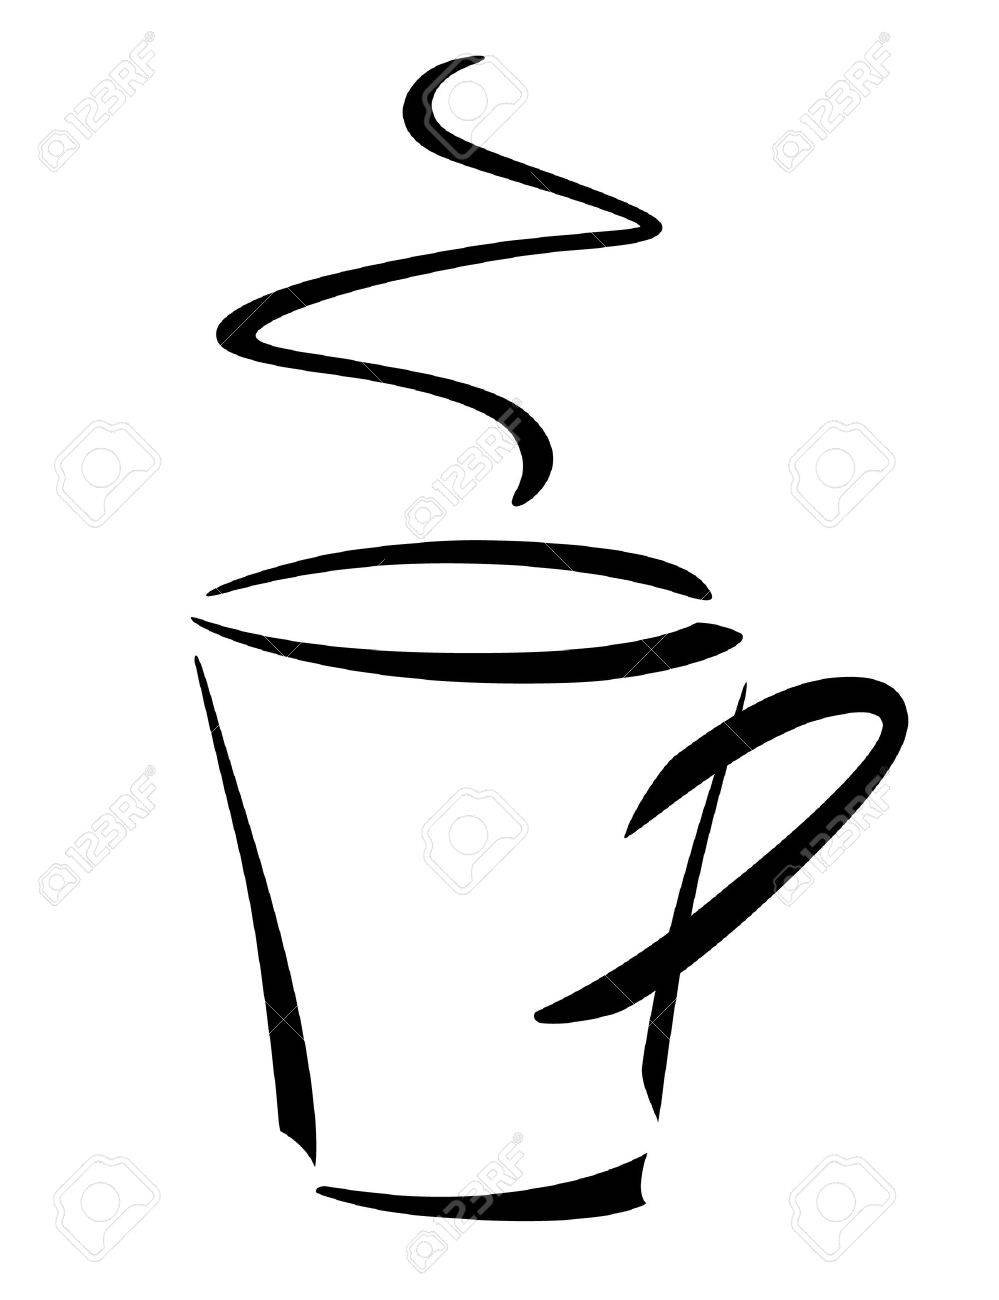 Coffee cup sketch - The Illustration Is Made On The Sketch Stock Vector 4930417